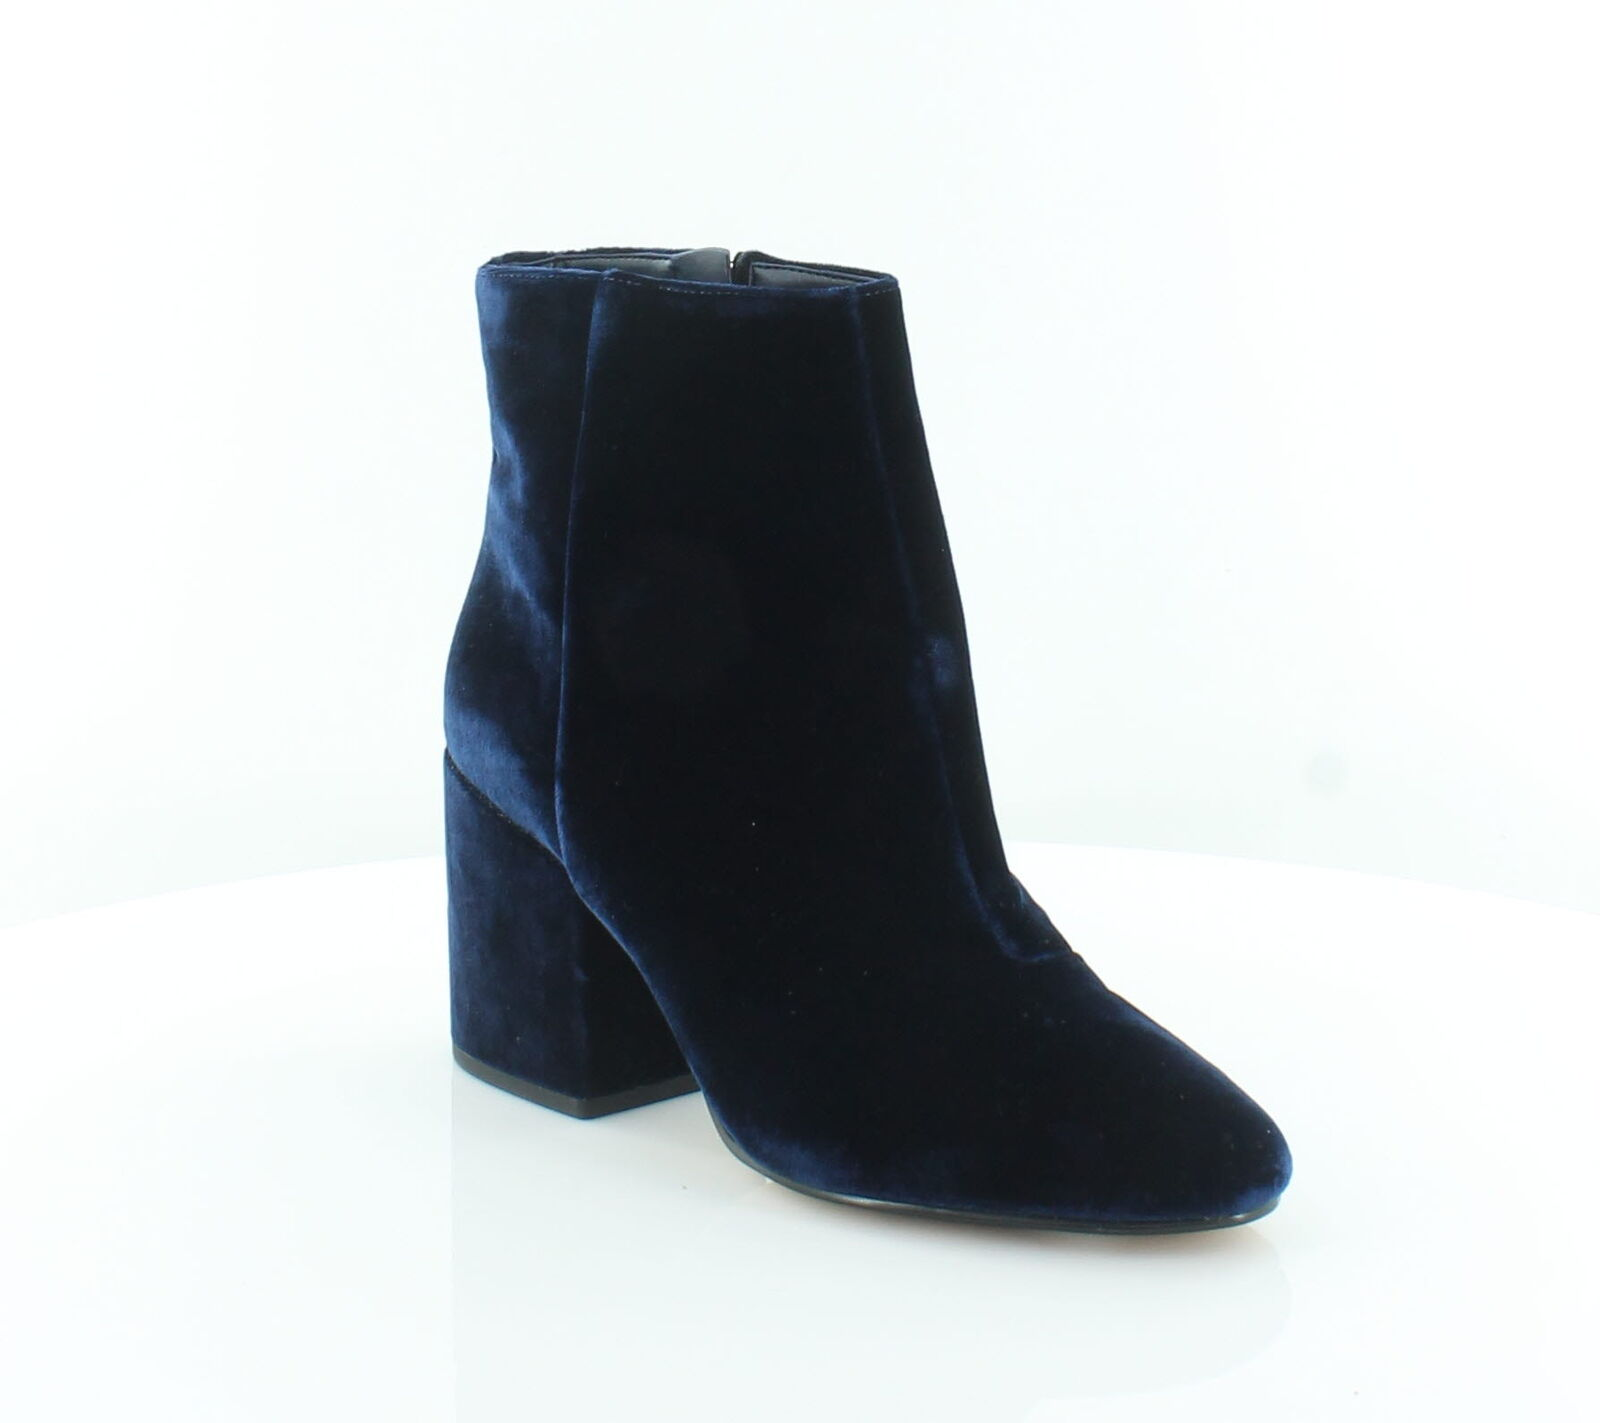 Sam Edelman Taye bluee Womens shoes Size 8.5 M Boots MSRP